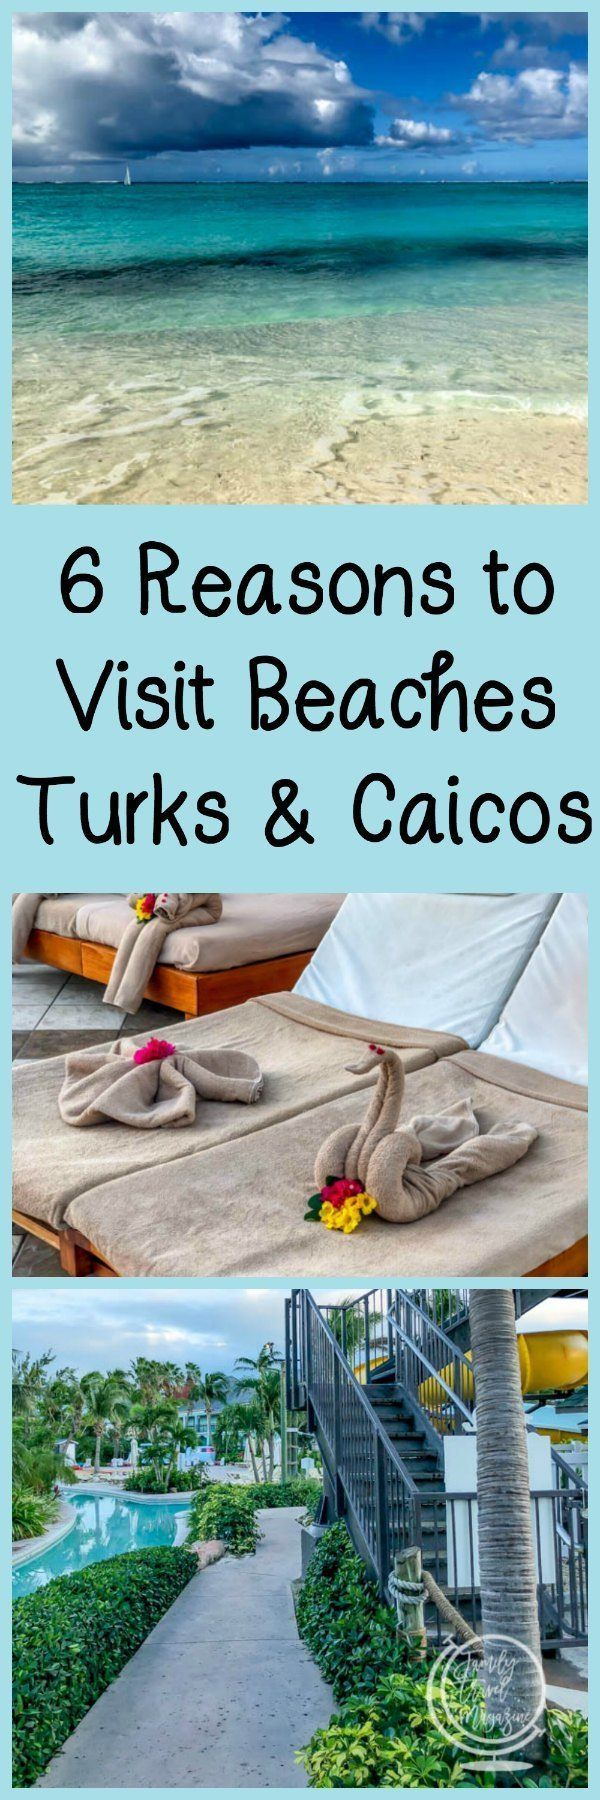 6 Reasons to Visit Beaches Turks and Caicos Resort, including beautiful beaches, delicious food, and fabulous service. #ad #familytravel #caribbean #beaches #turksandcaicos #beach